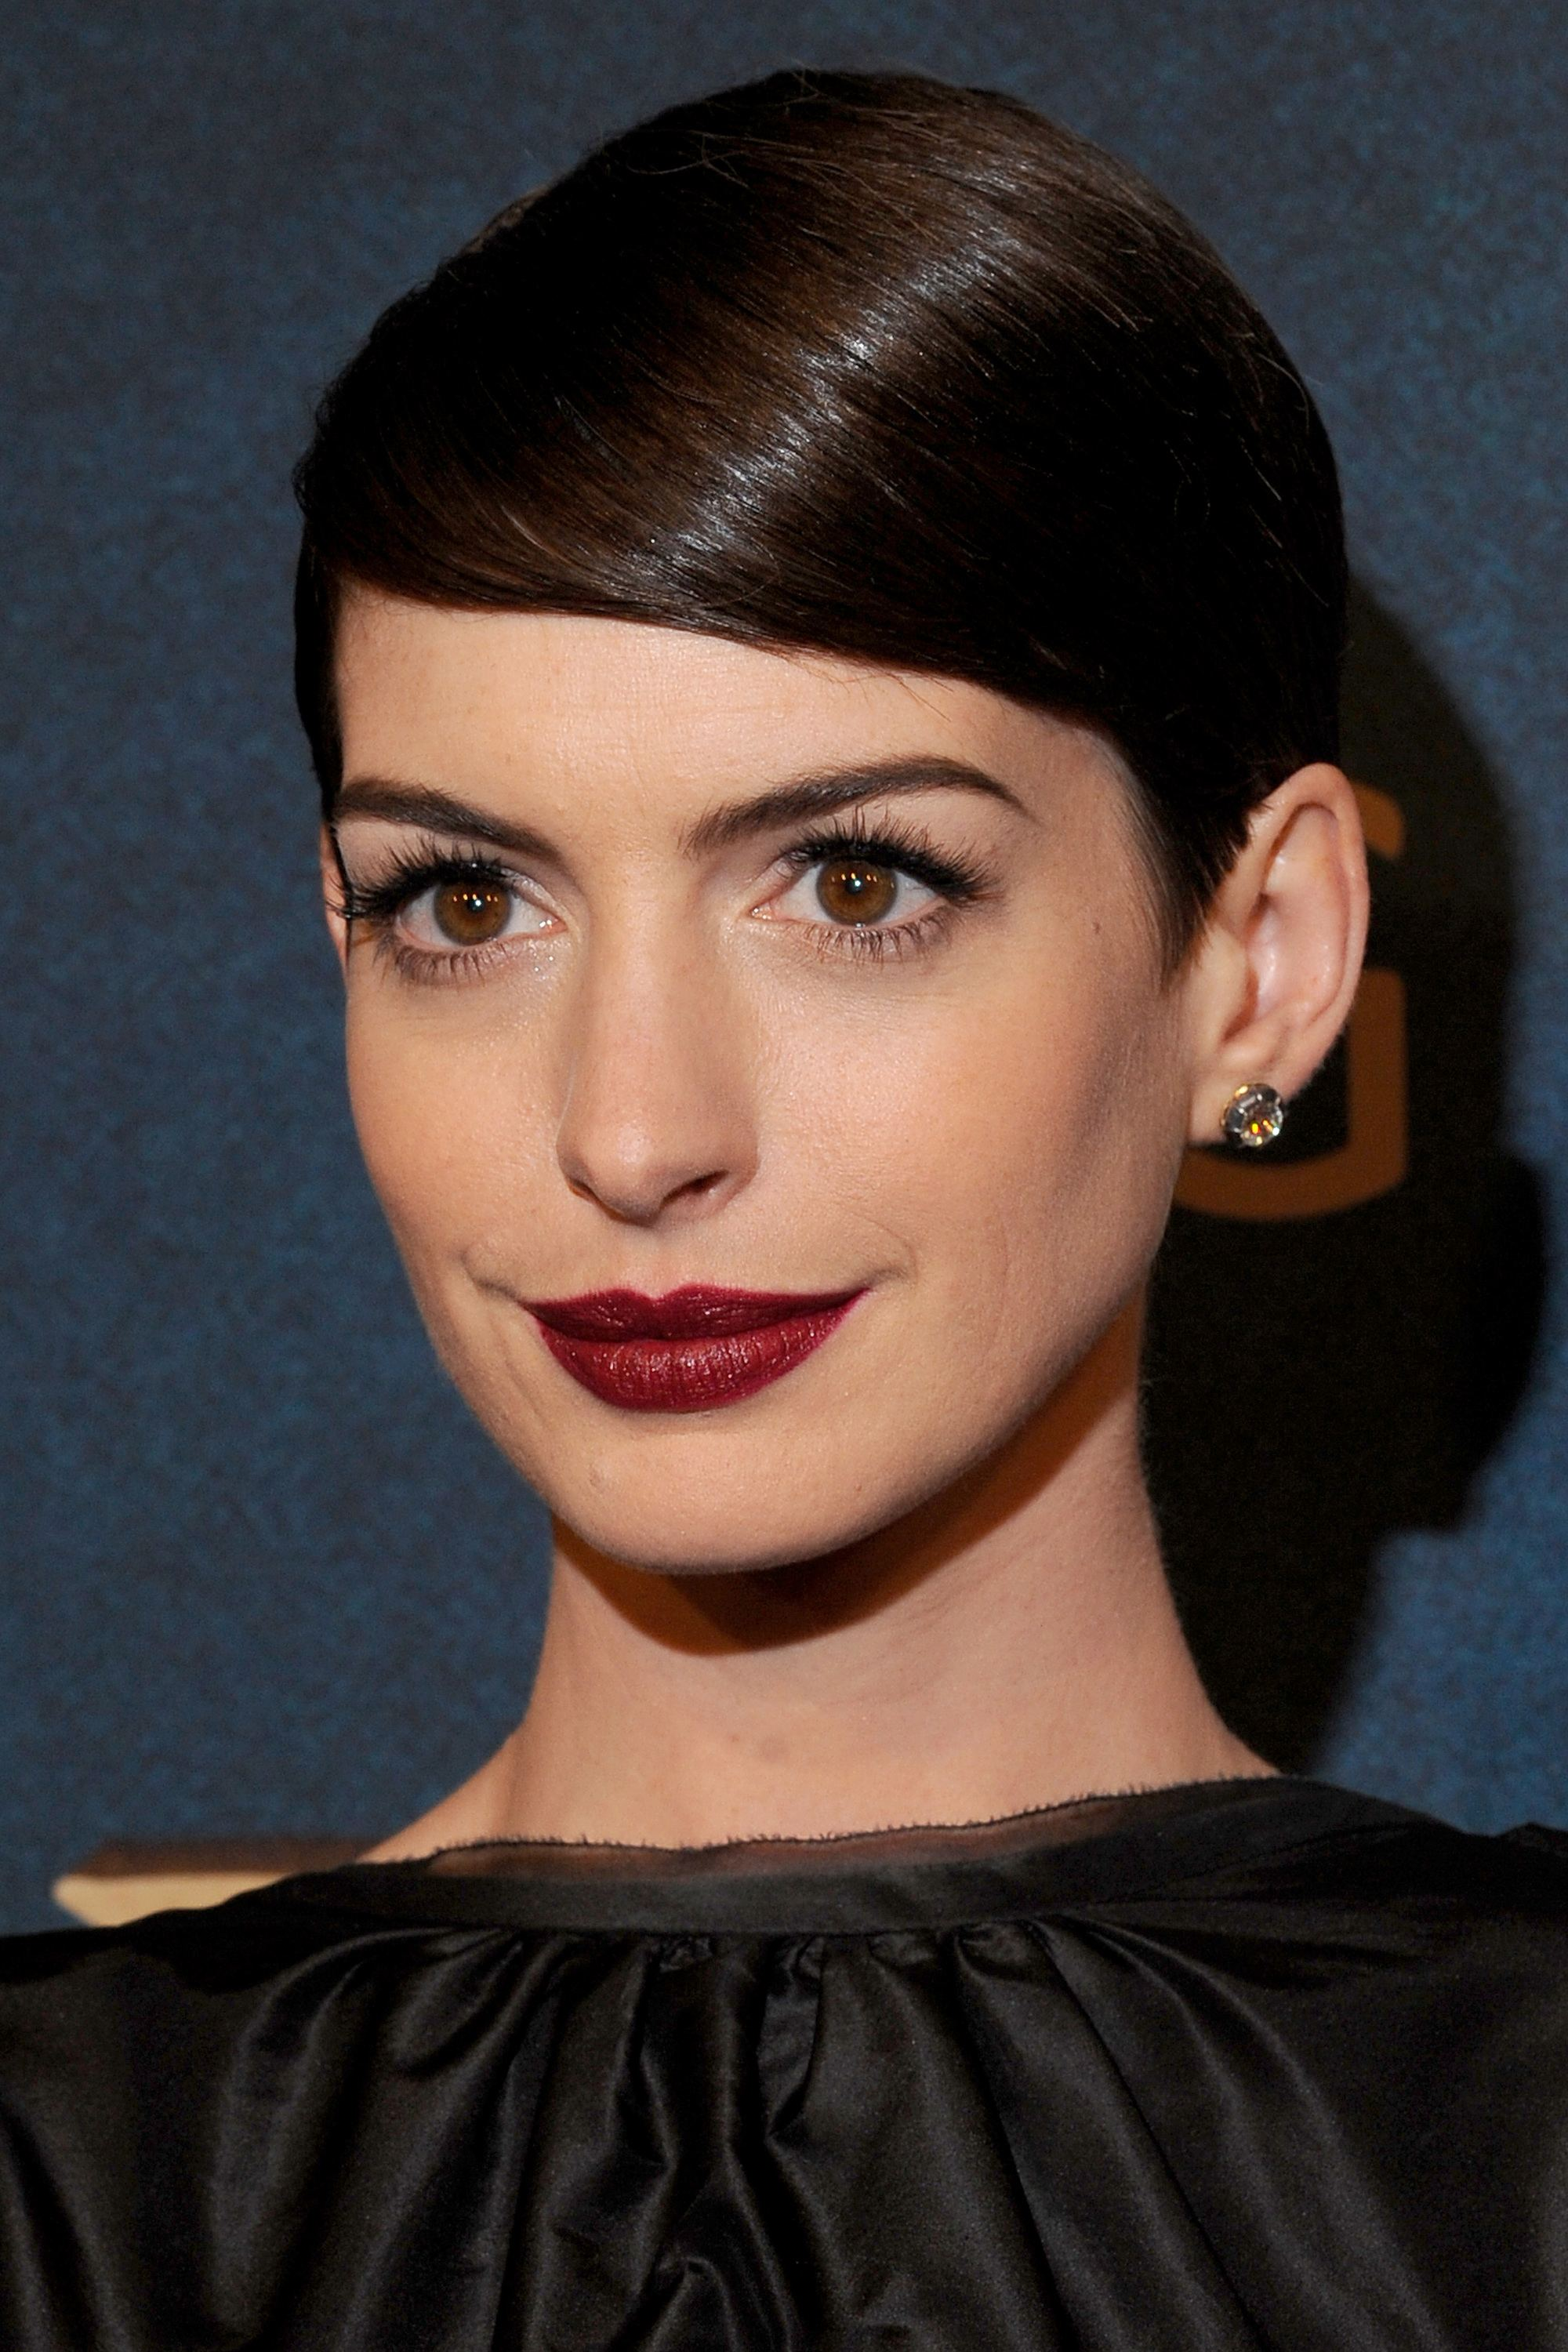 anne hathaway dark brown short pixie hair styled into sleek side fringe